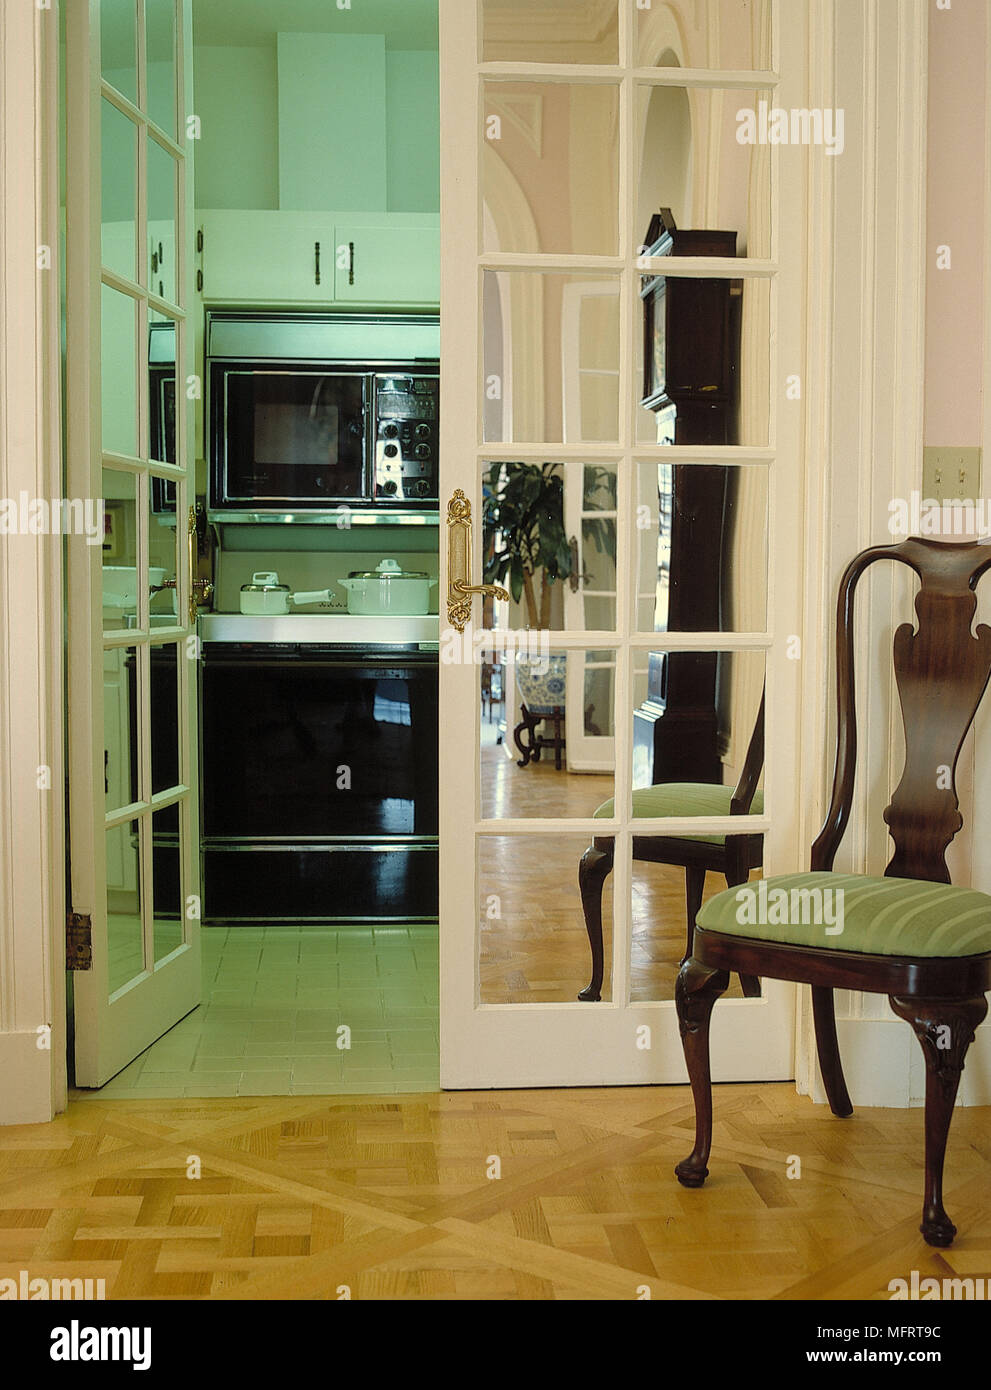 Open Mirrored French Doors With Kitchen Beyond Stock Photo